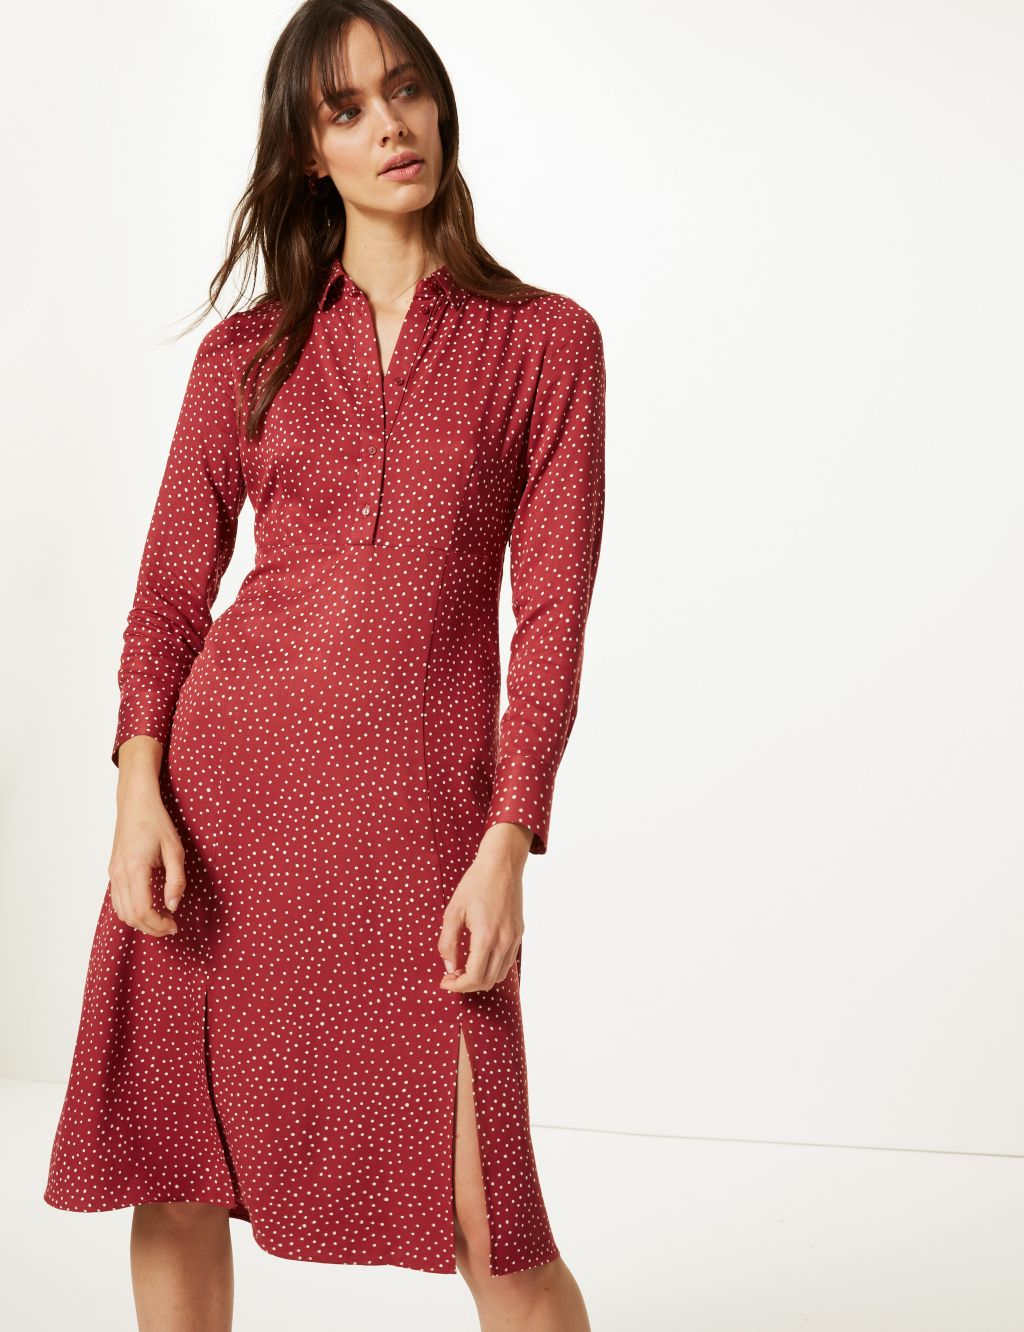 M&S red dress £45